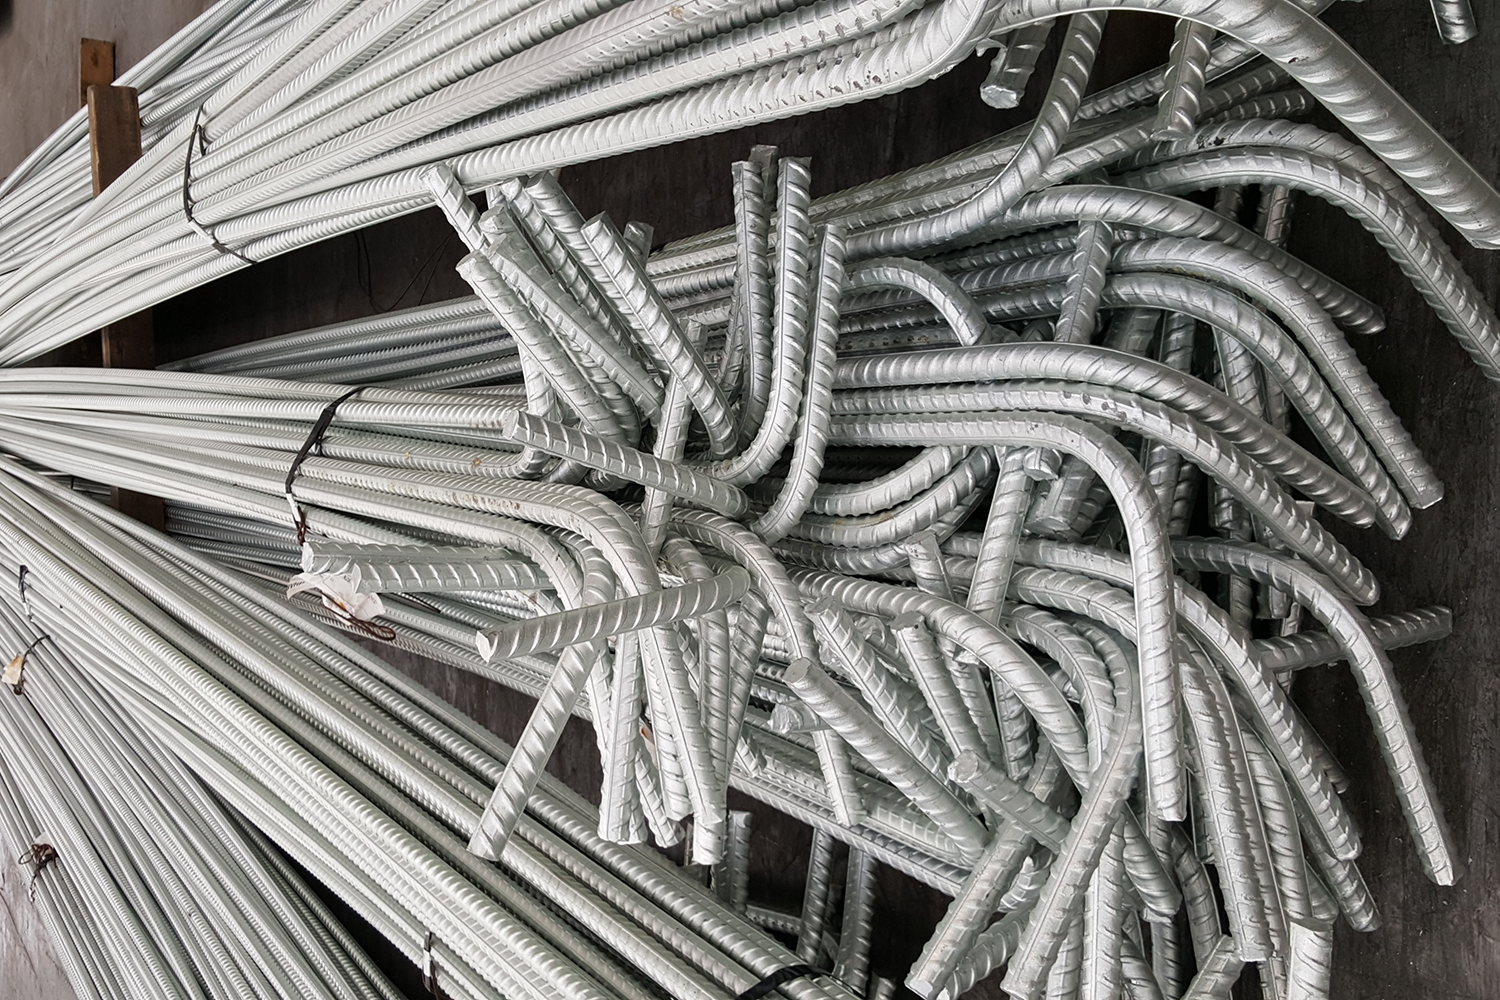 Hot dip galvanized reinforcement for increased durability in concrete construction.